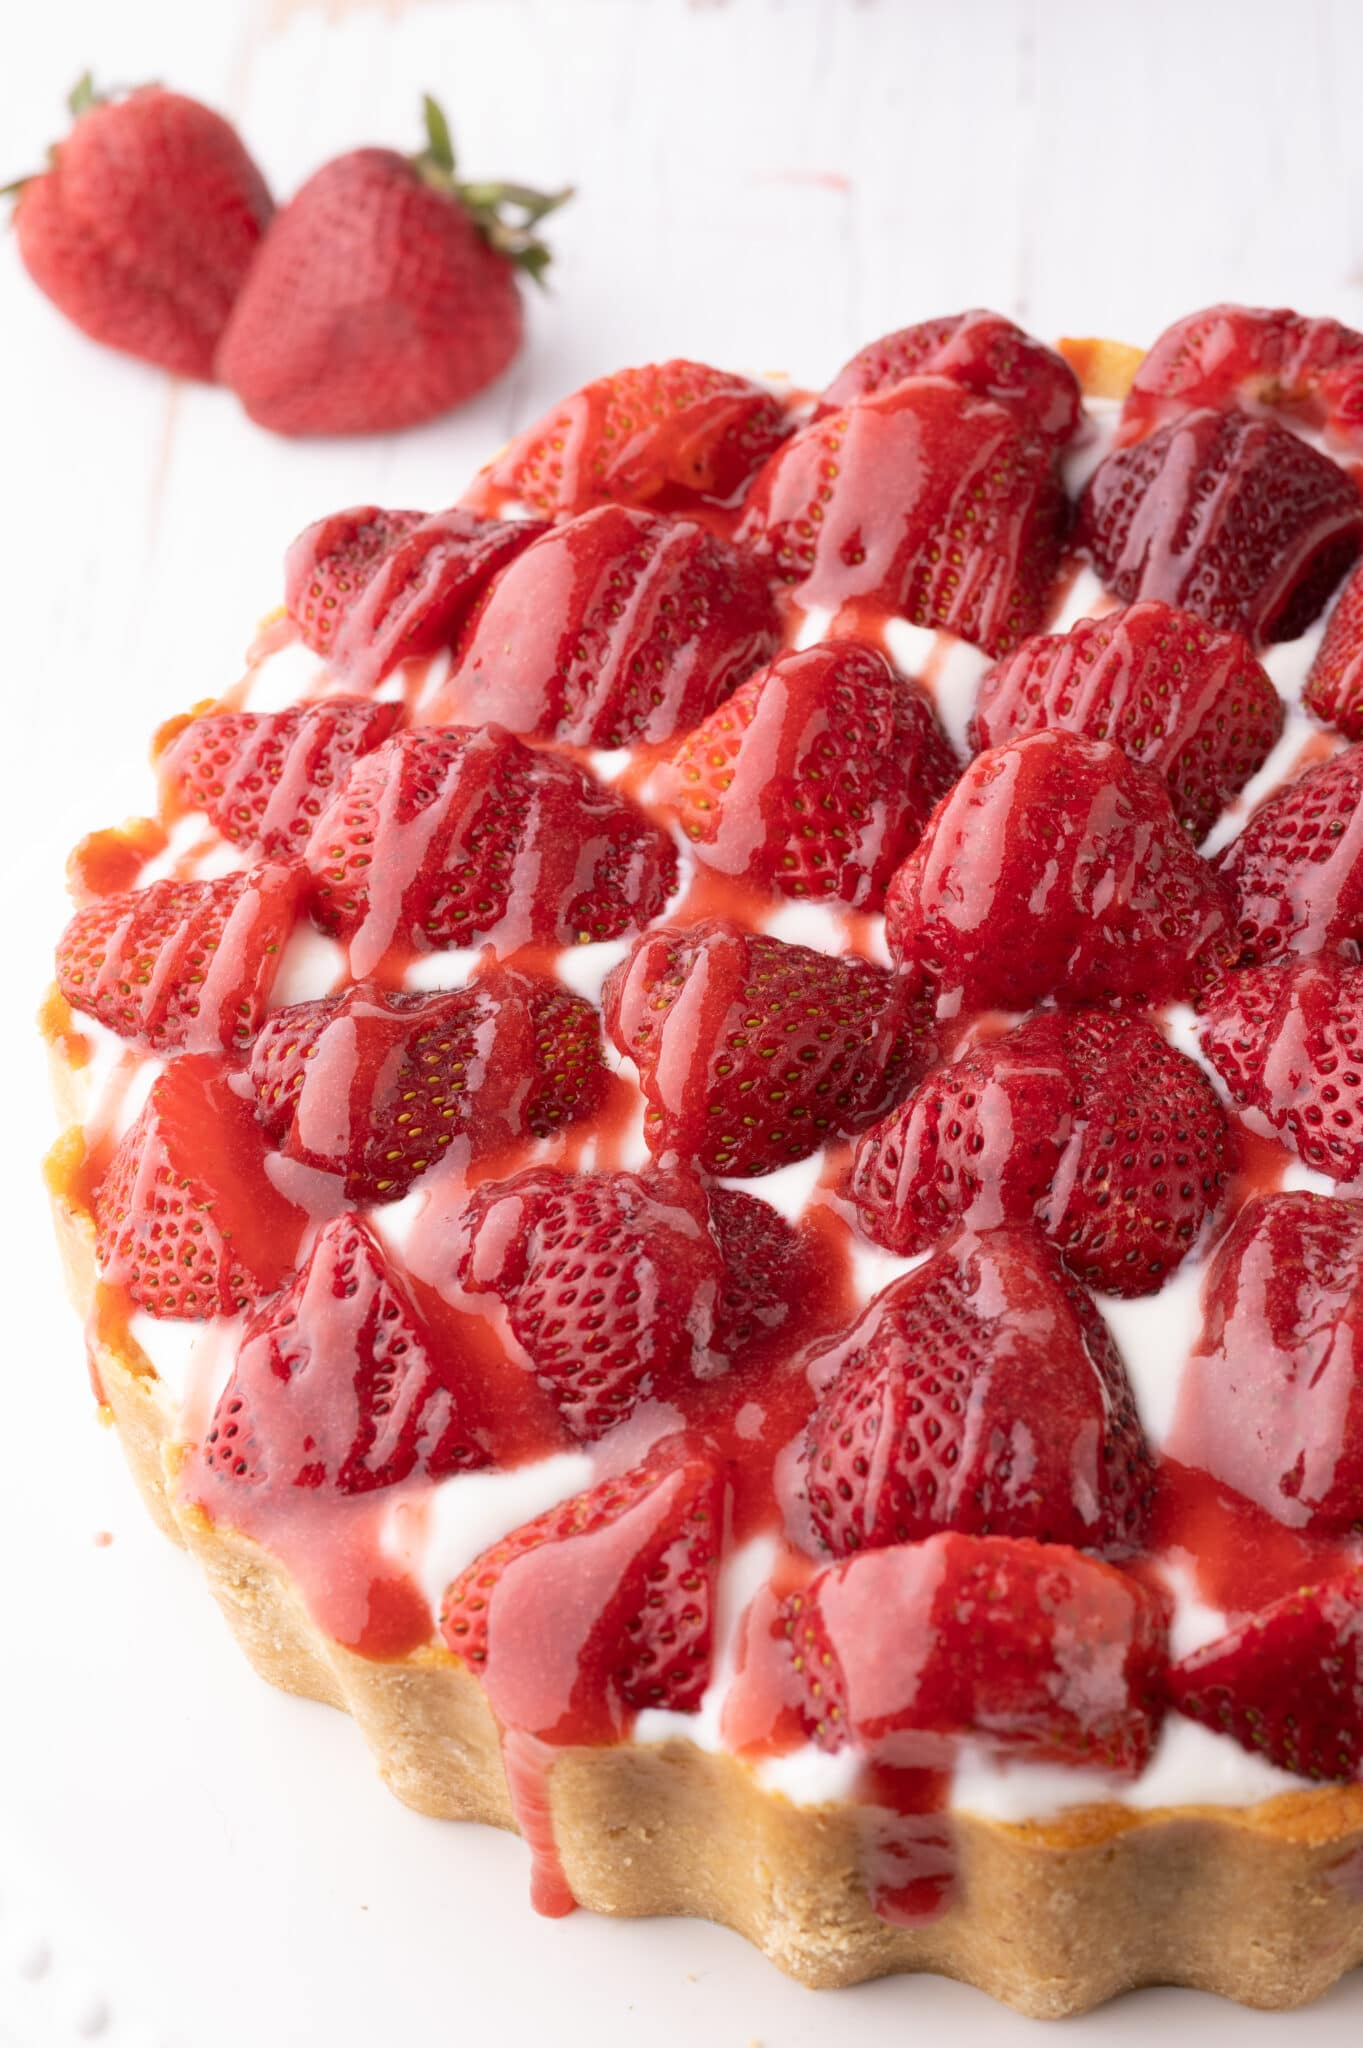 Keto strawberry cheesecake with fresh strawberries and drizzled with strawberry sauce.